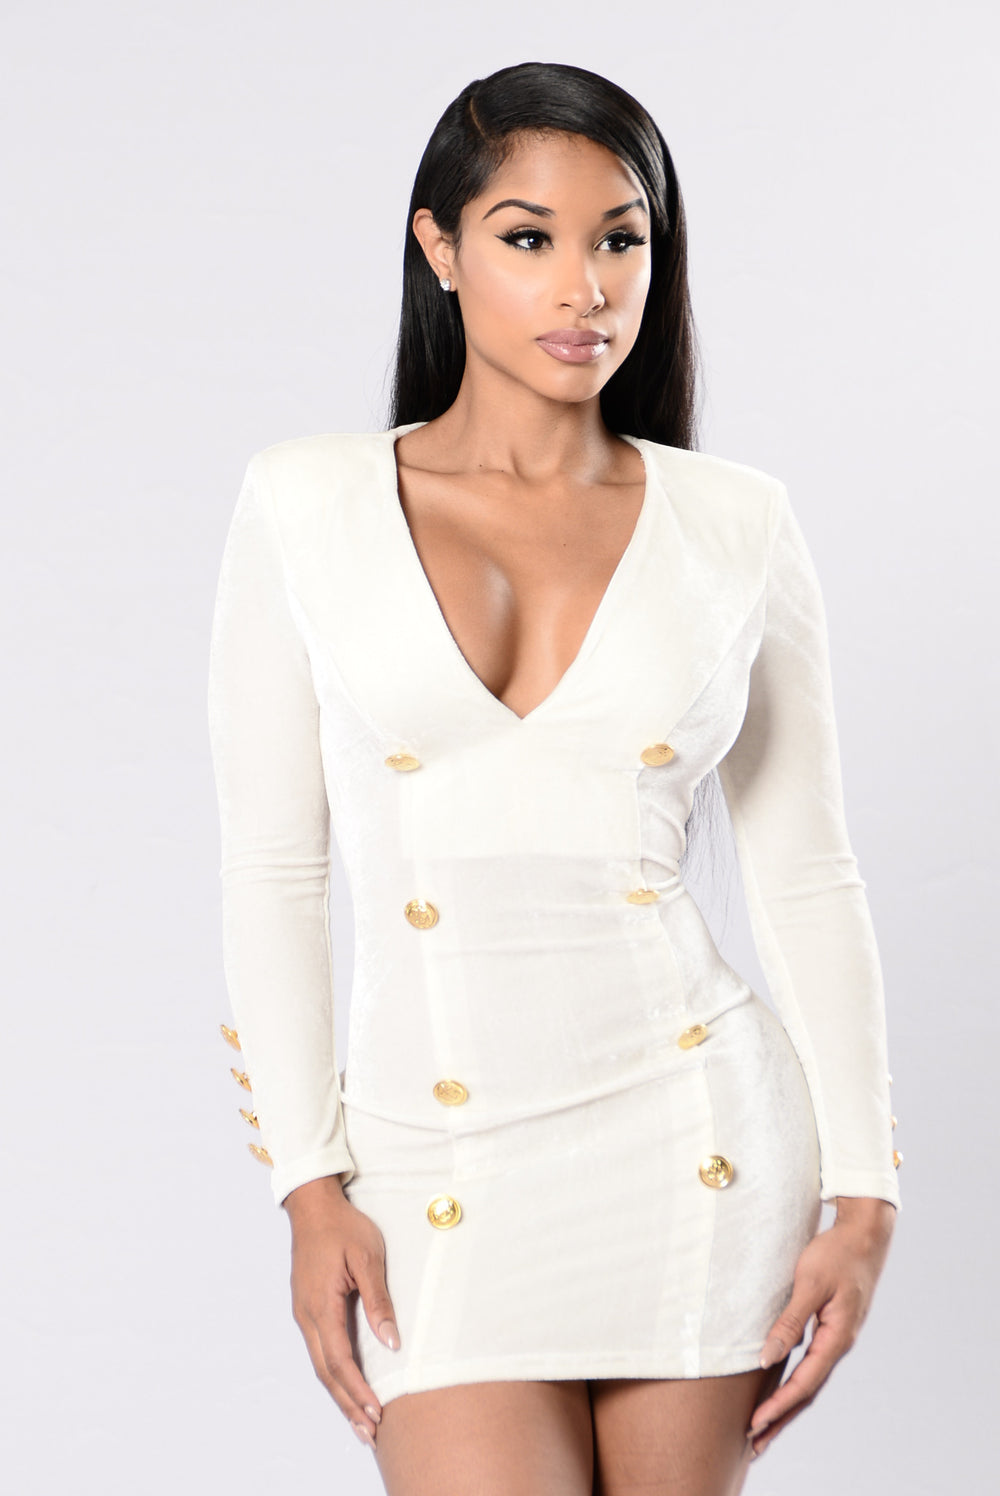 Set Sail Dress - Ivory